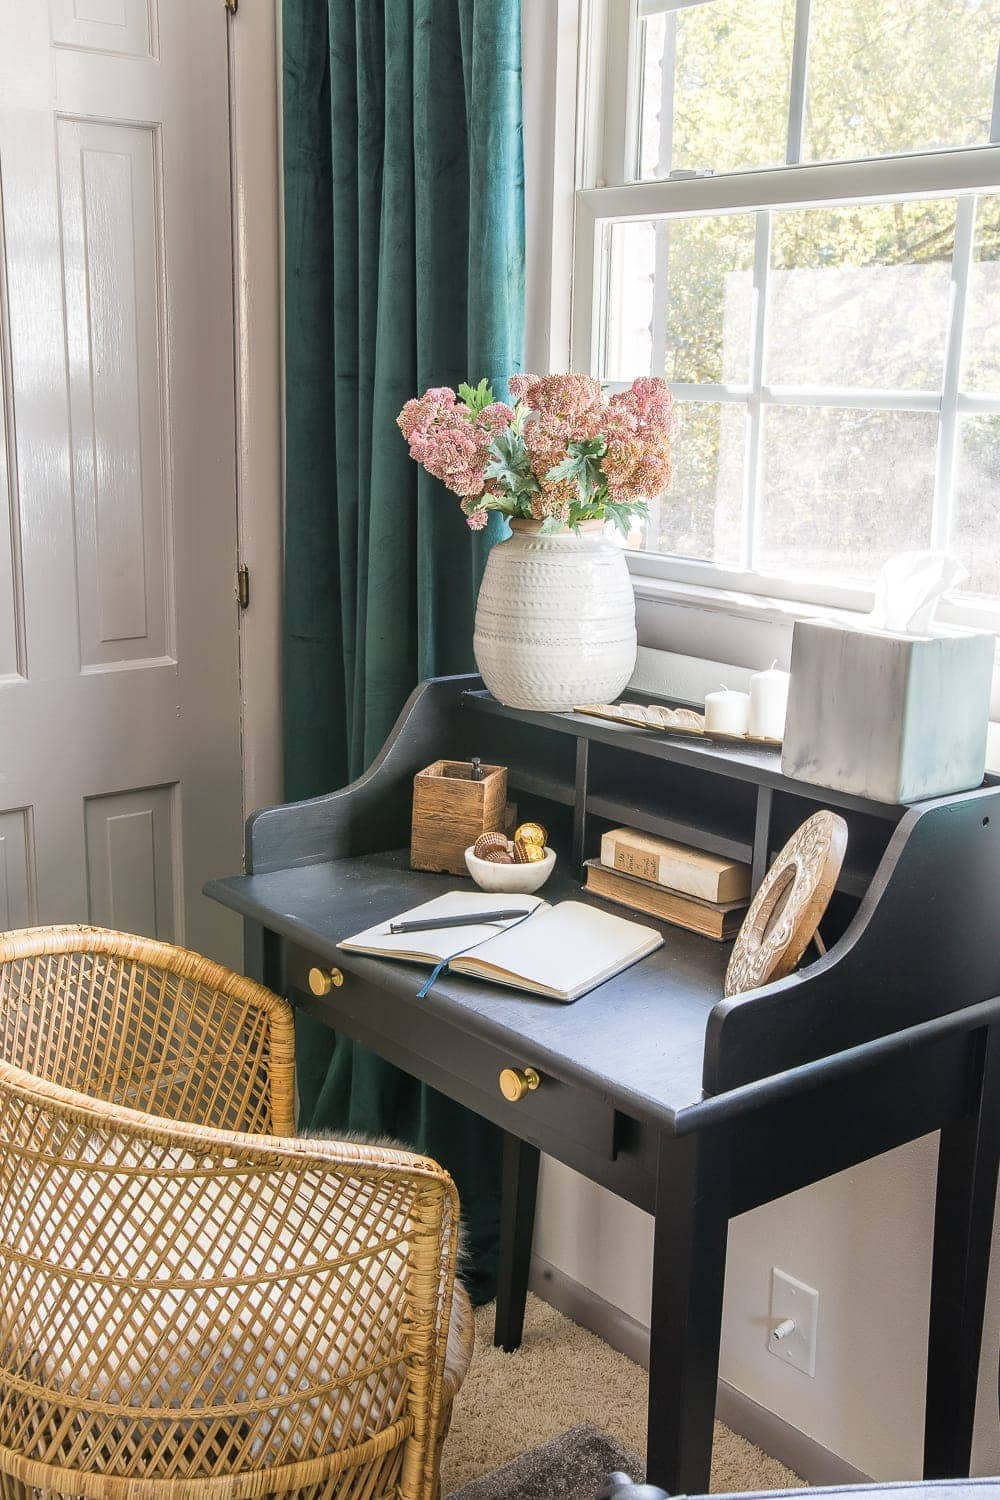 38 Guest Bedroom Essentials | Have a small desk / vanity area with a mirror so that guests have a place to get ready if other people need to get in the bathroom.